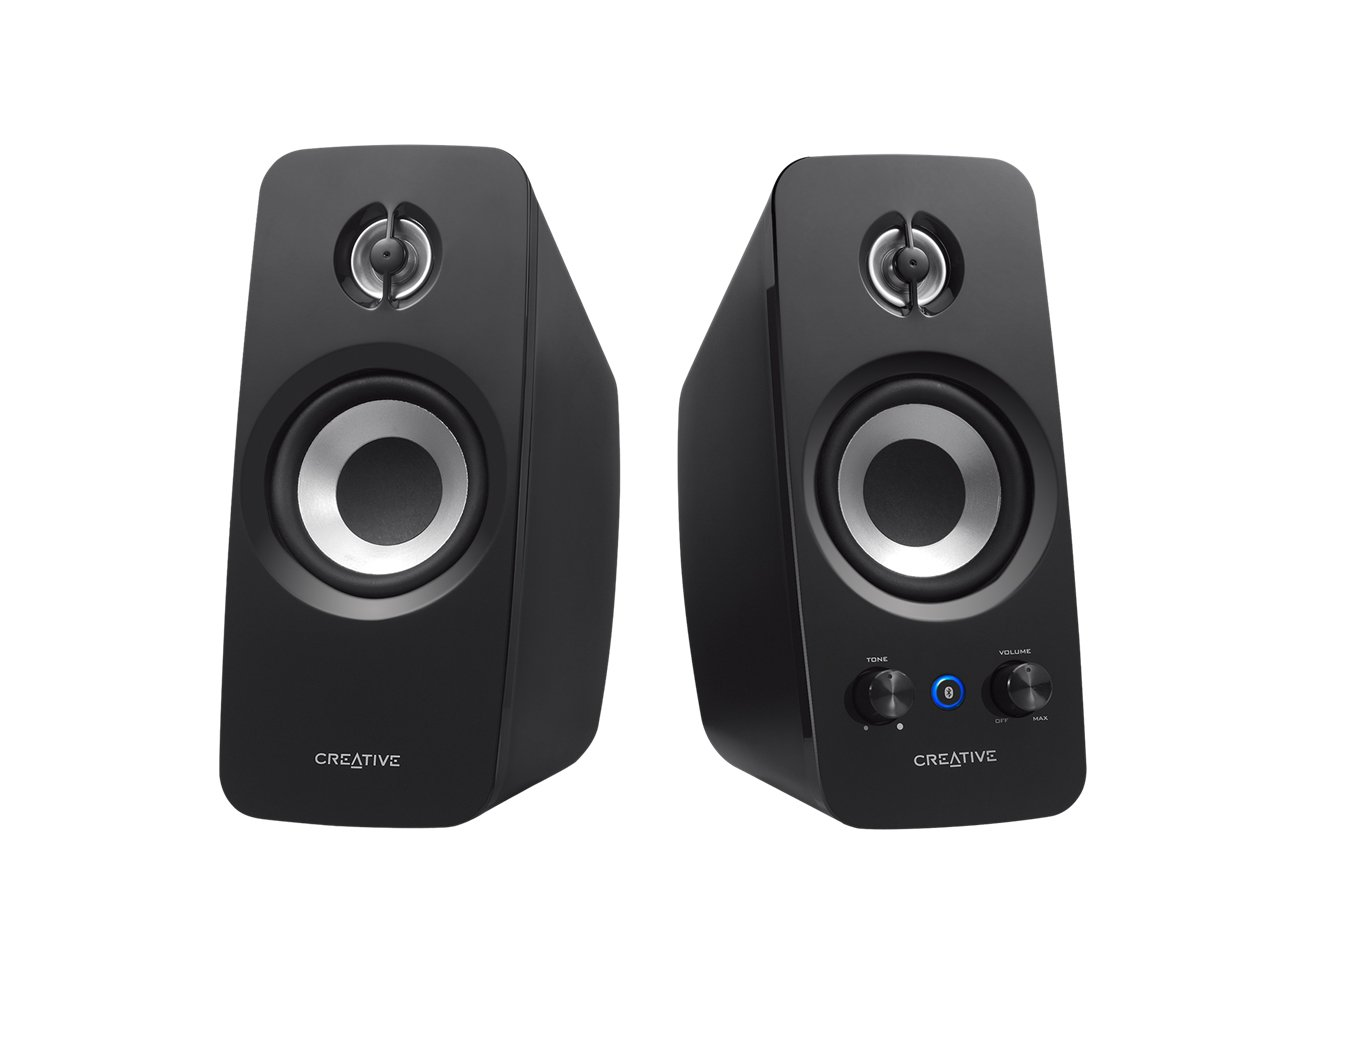 Creative T15 - Sistema de Altavoces 2.0 Wireless (Bluetooth 2.1 + EDR,Configuración del Sistema Sistema 2.0), Negro